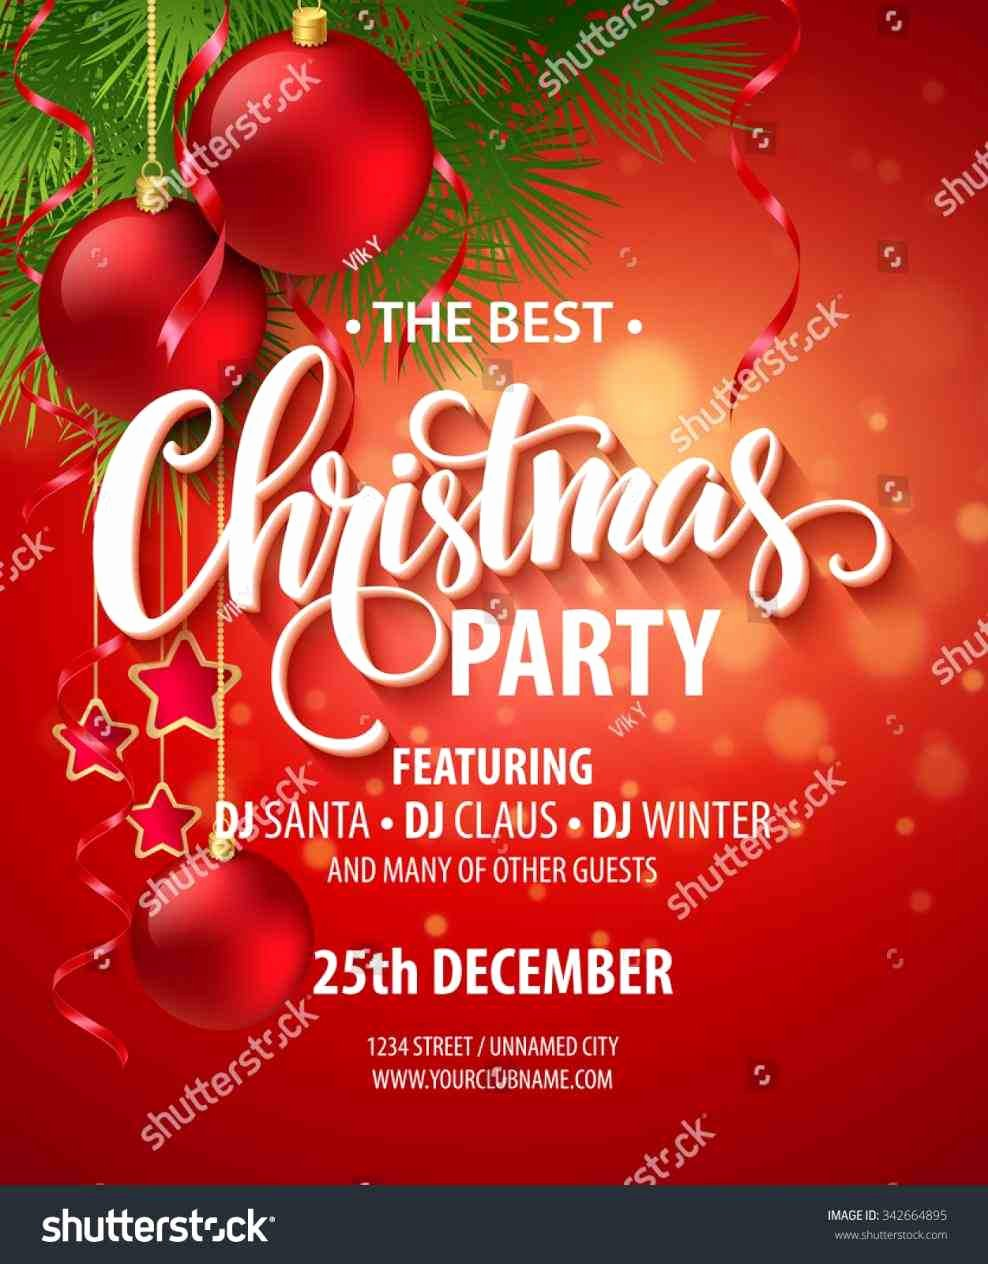 Holiday Flyer Template Word Awesome Christmas Flyer Word Template 075f Cfe Abilityskillup